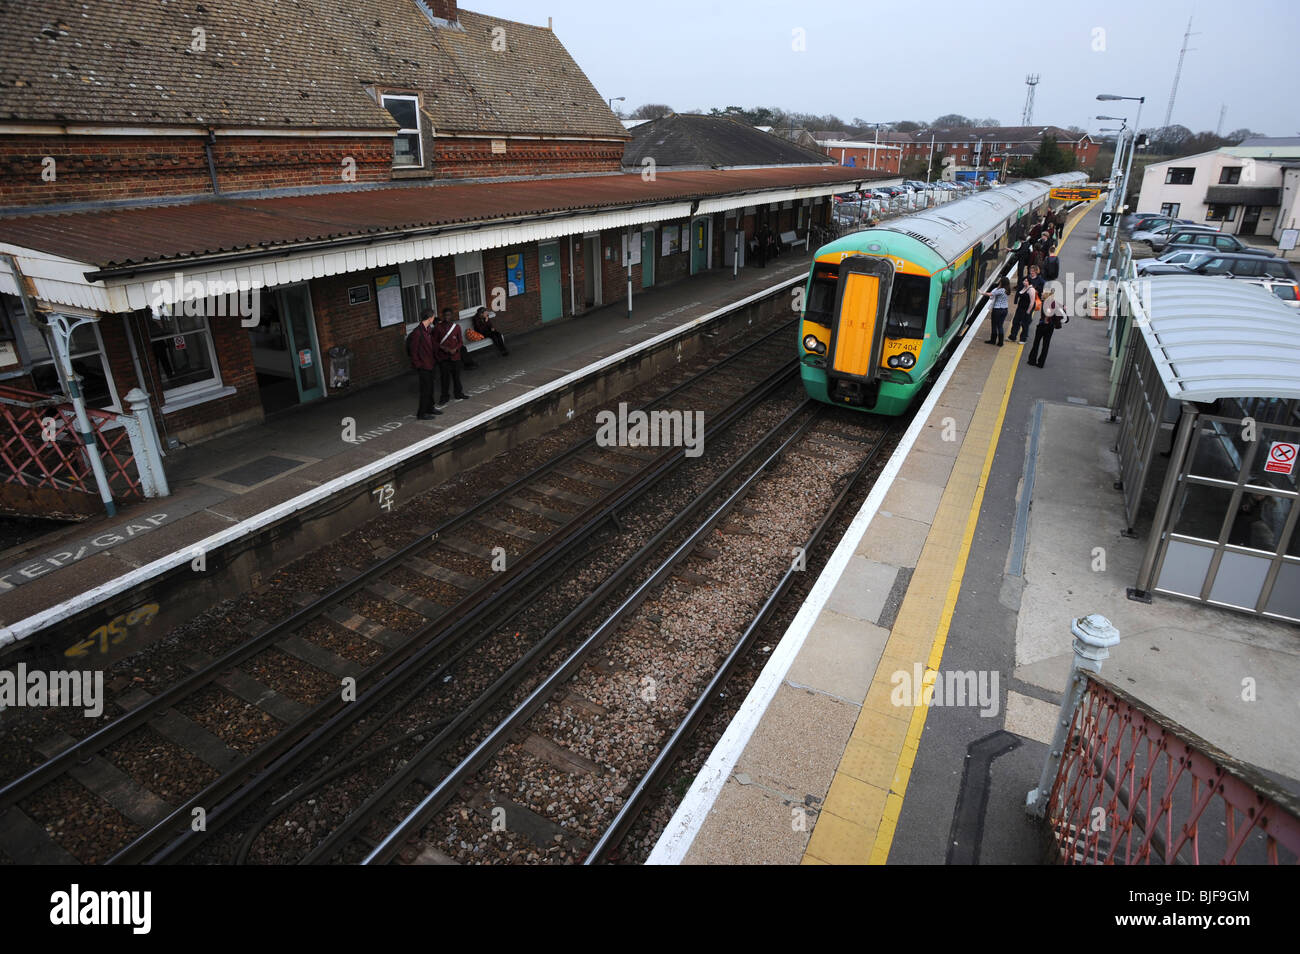 Train arrives on the platform of billingshurst a small station in west sussex - Stock Image